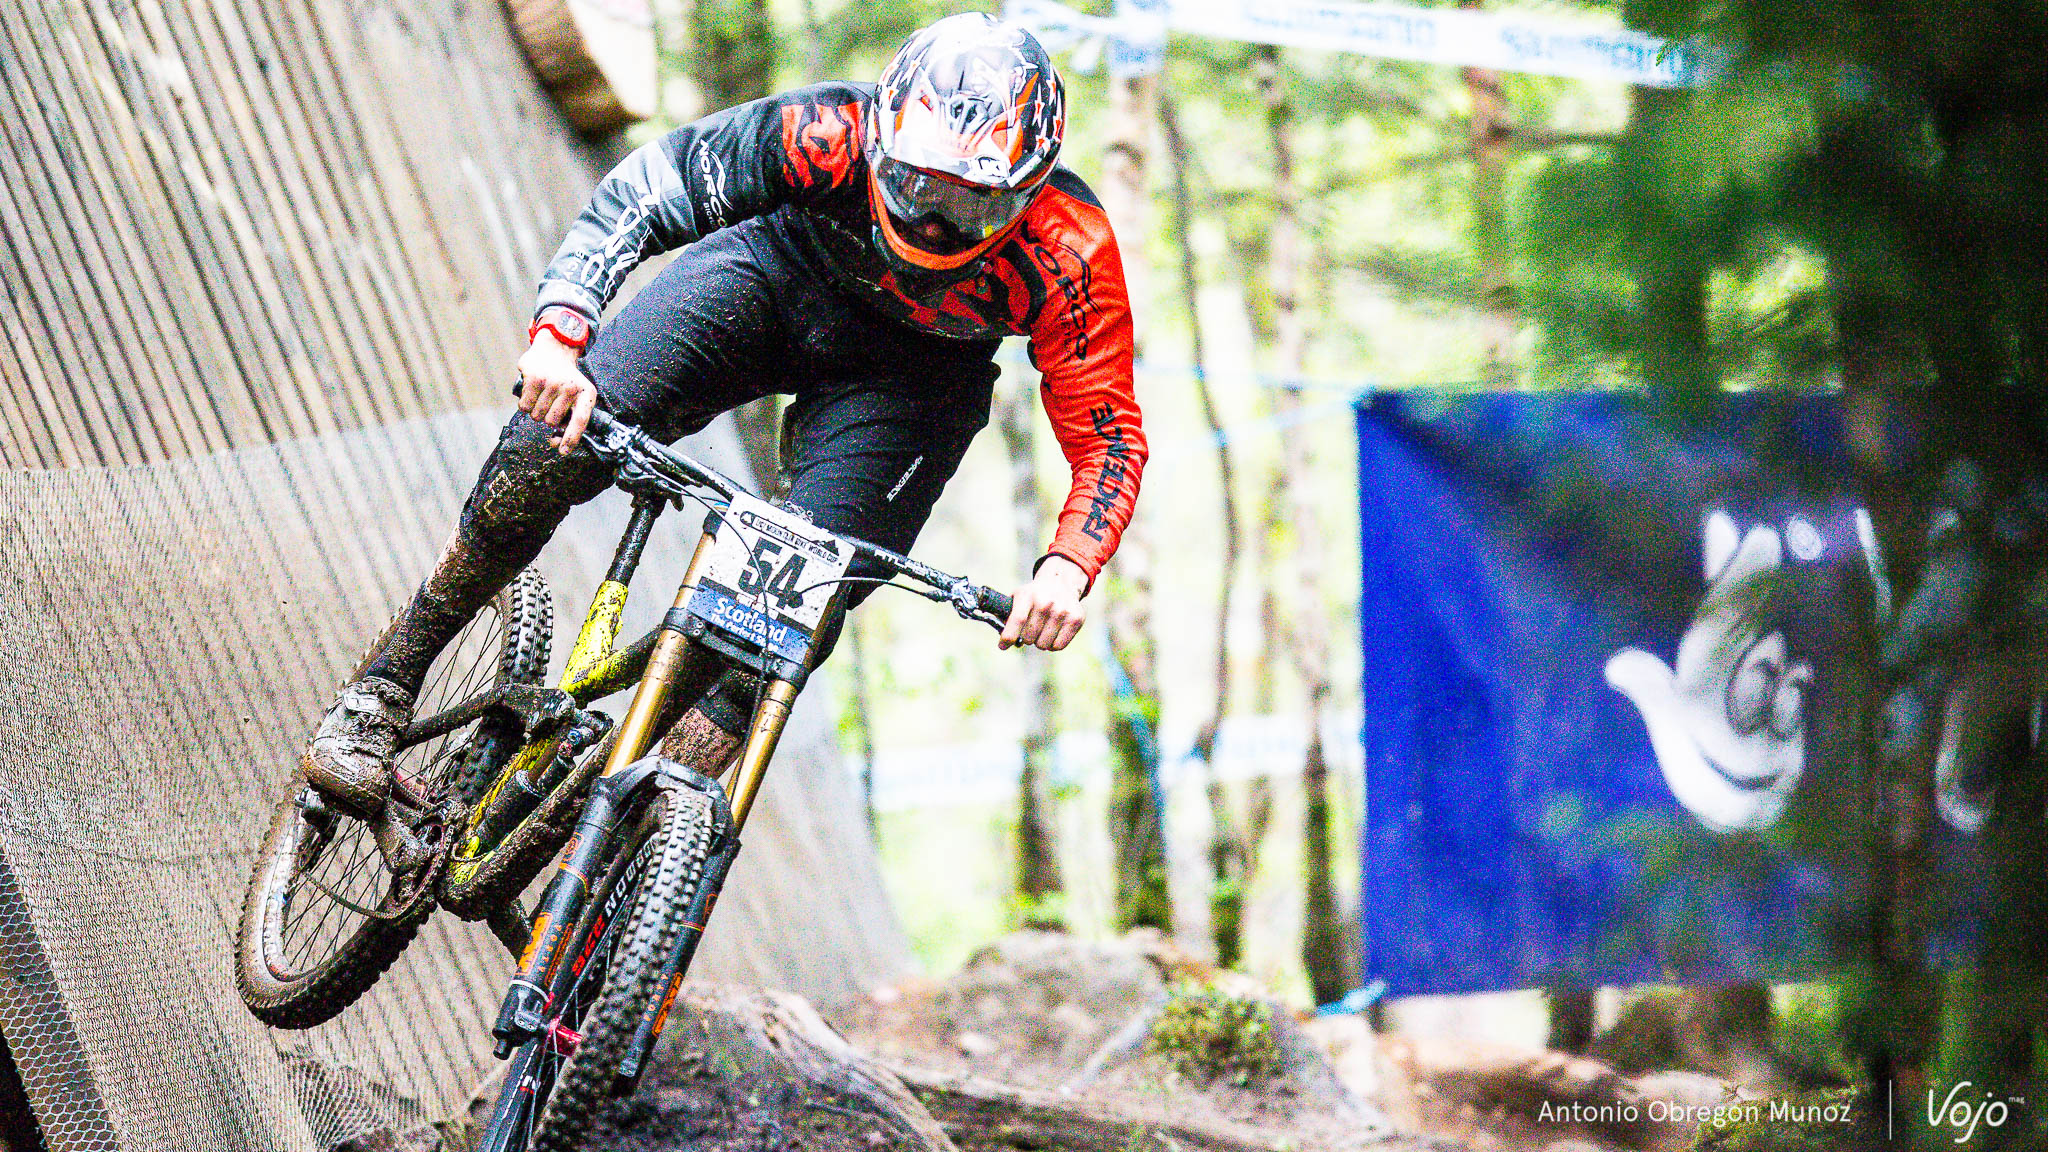 Fort_William_UCI_World_Cup_DH_2015_(Hommes_Femmes)_(Blenki)_Copyright_Antonio_Obregon_VojoMag-14